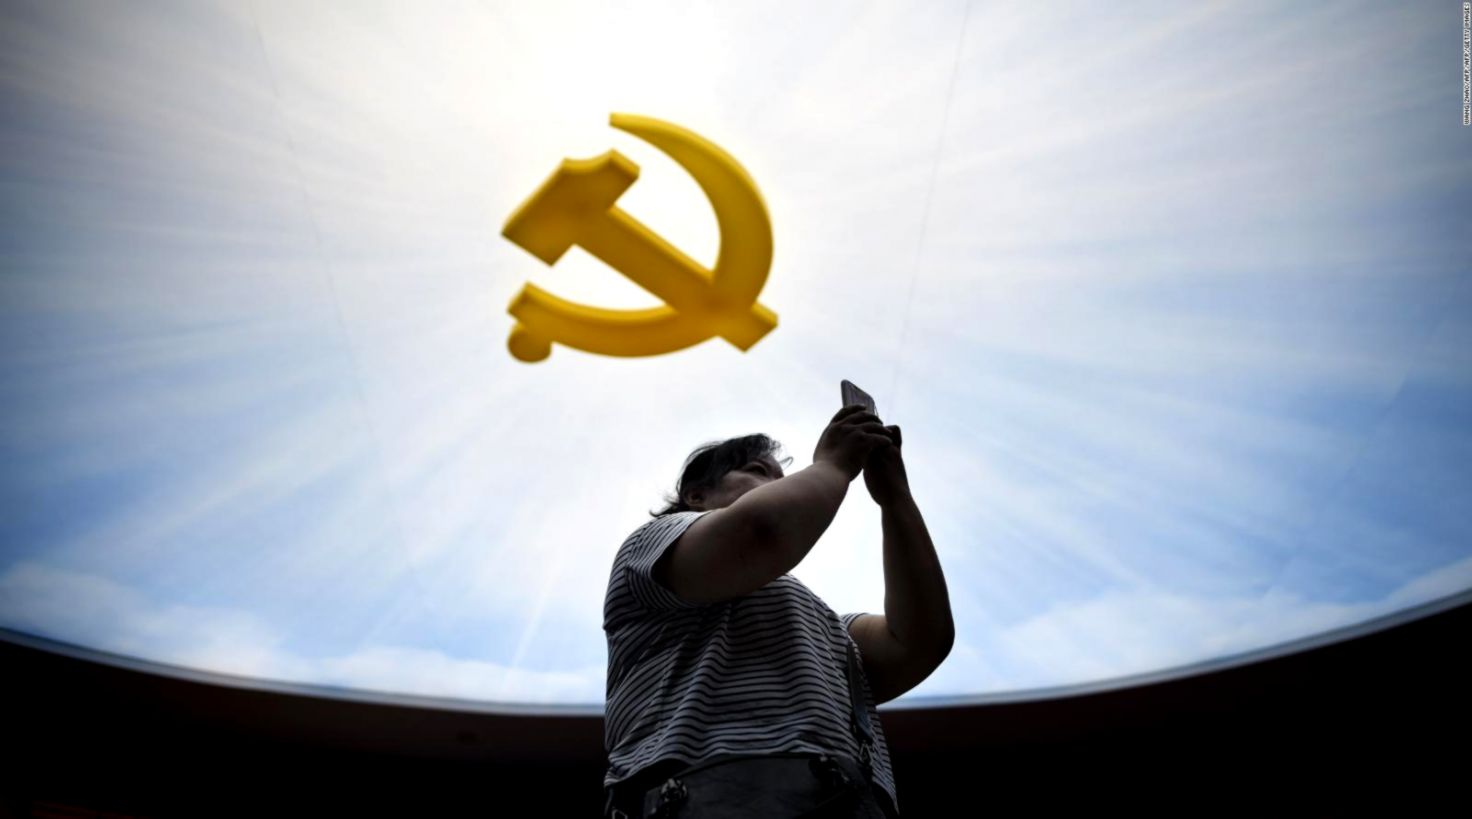 China censorship World internet freedom declines for 8th year in